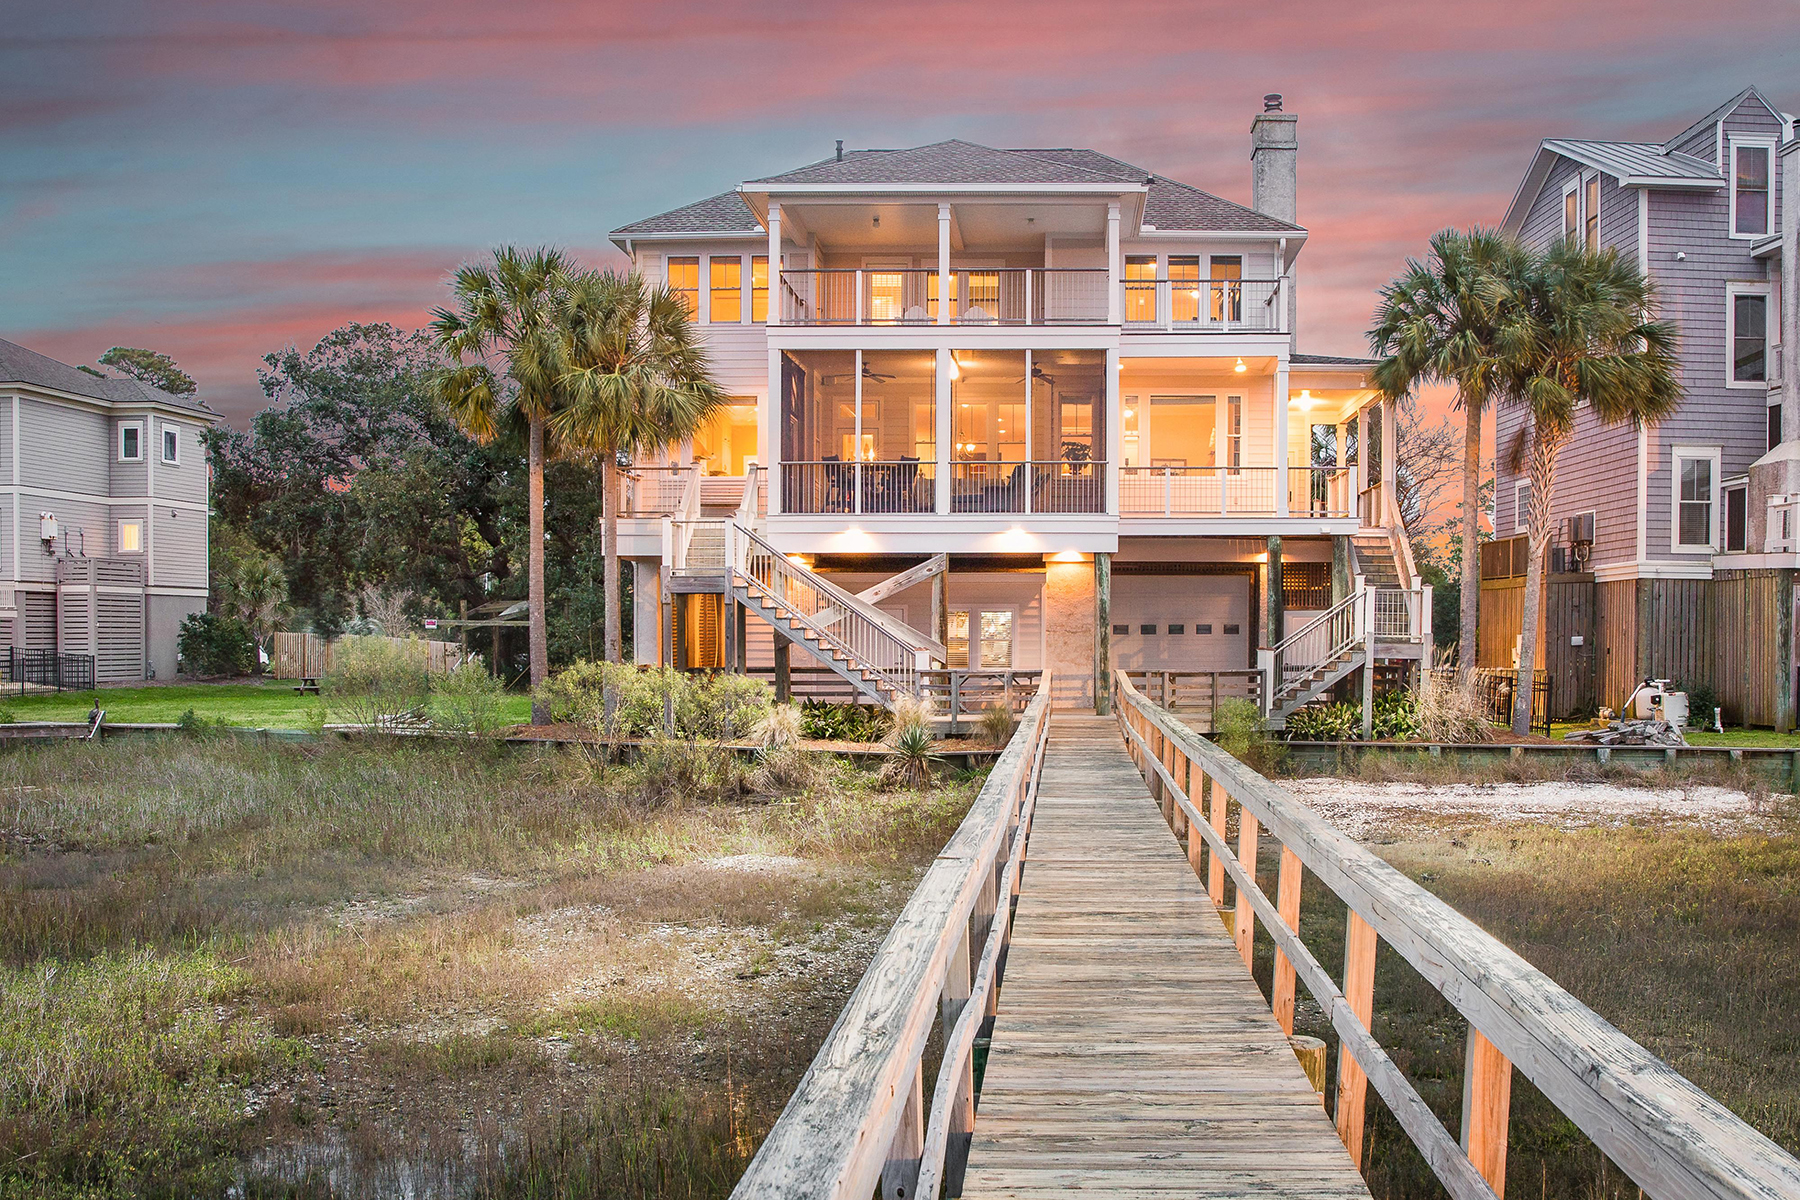 Single Family Homes for Sale at 11 Red Sunset Lane Folly Beach, South Carolina 29439 United States